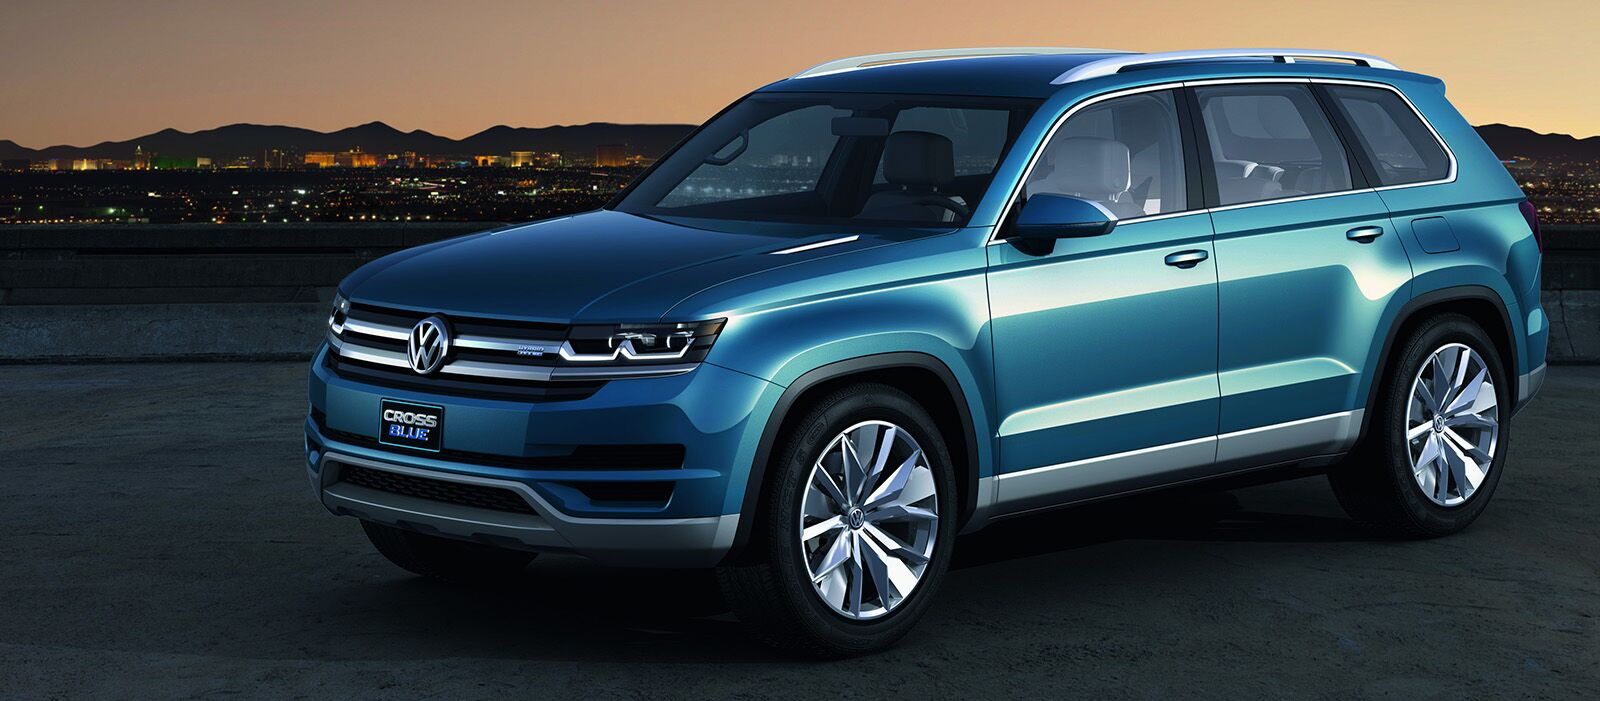 volkswagen s new three row suv the crossblue. Black Bedroom Furniture Sets. Home Design Ideas